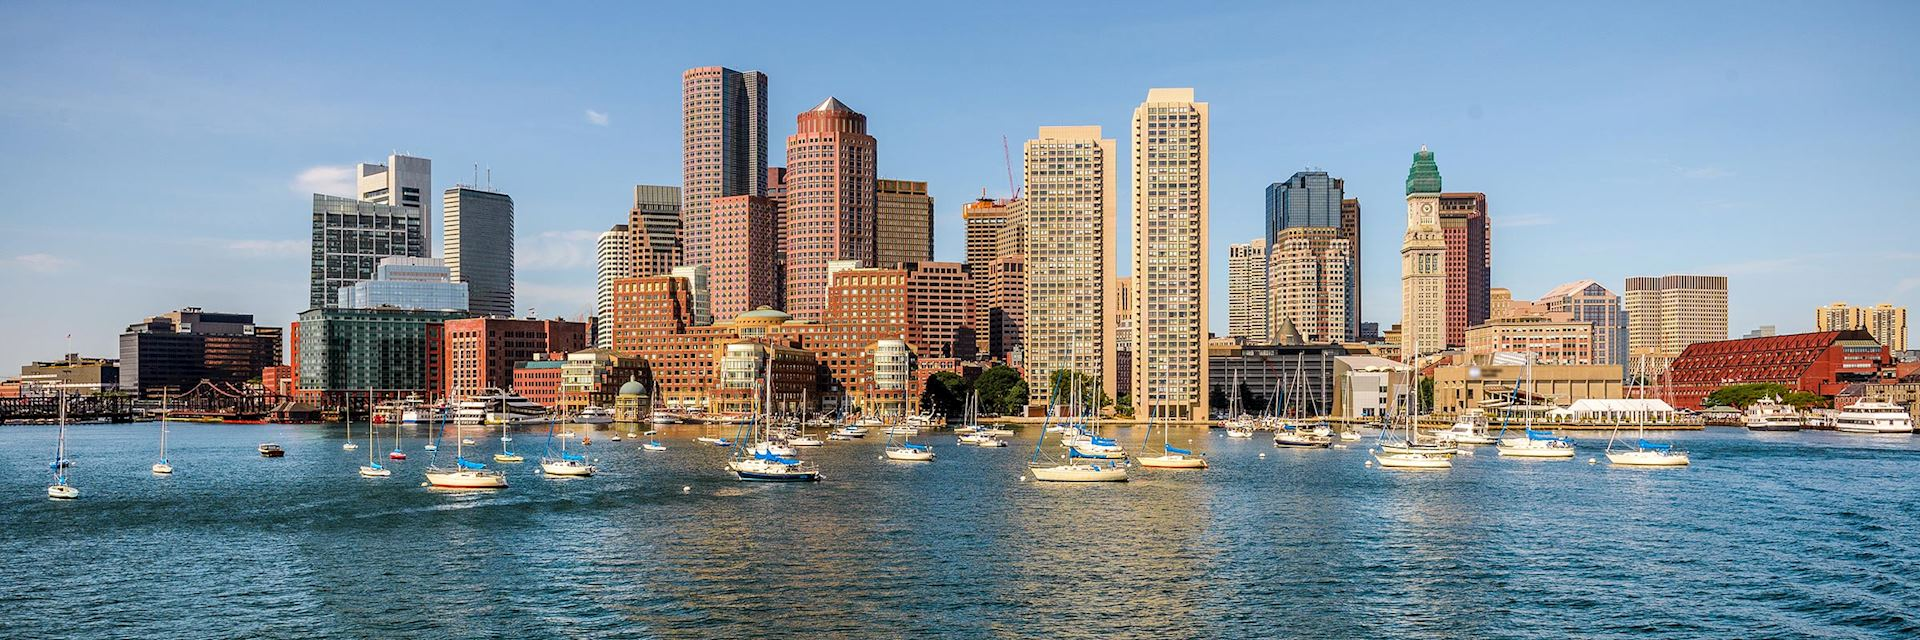 Boston waterfront, USA